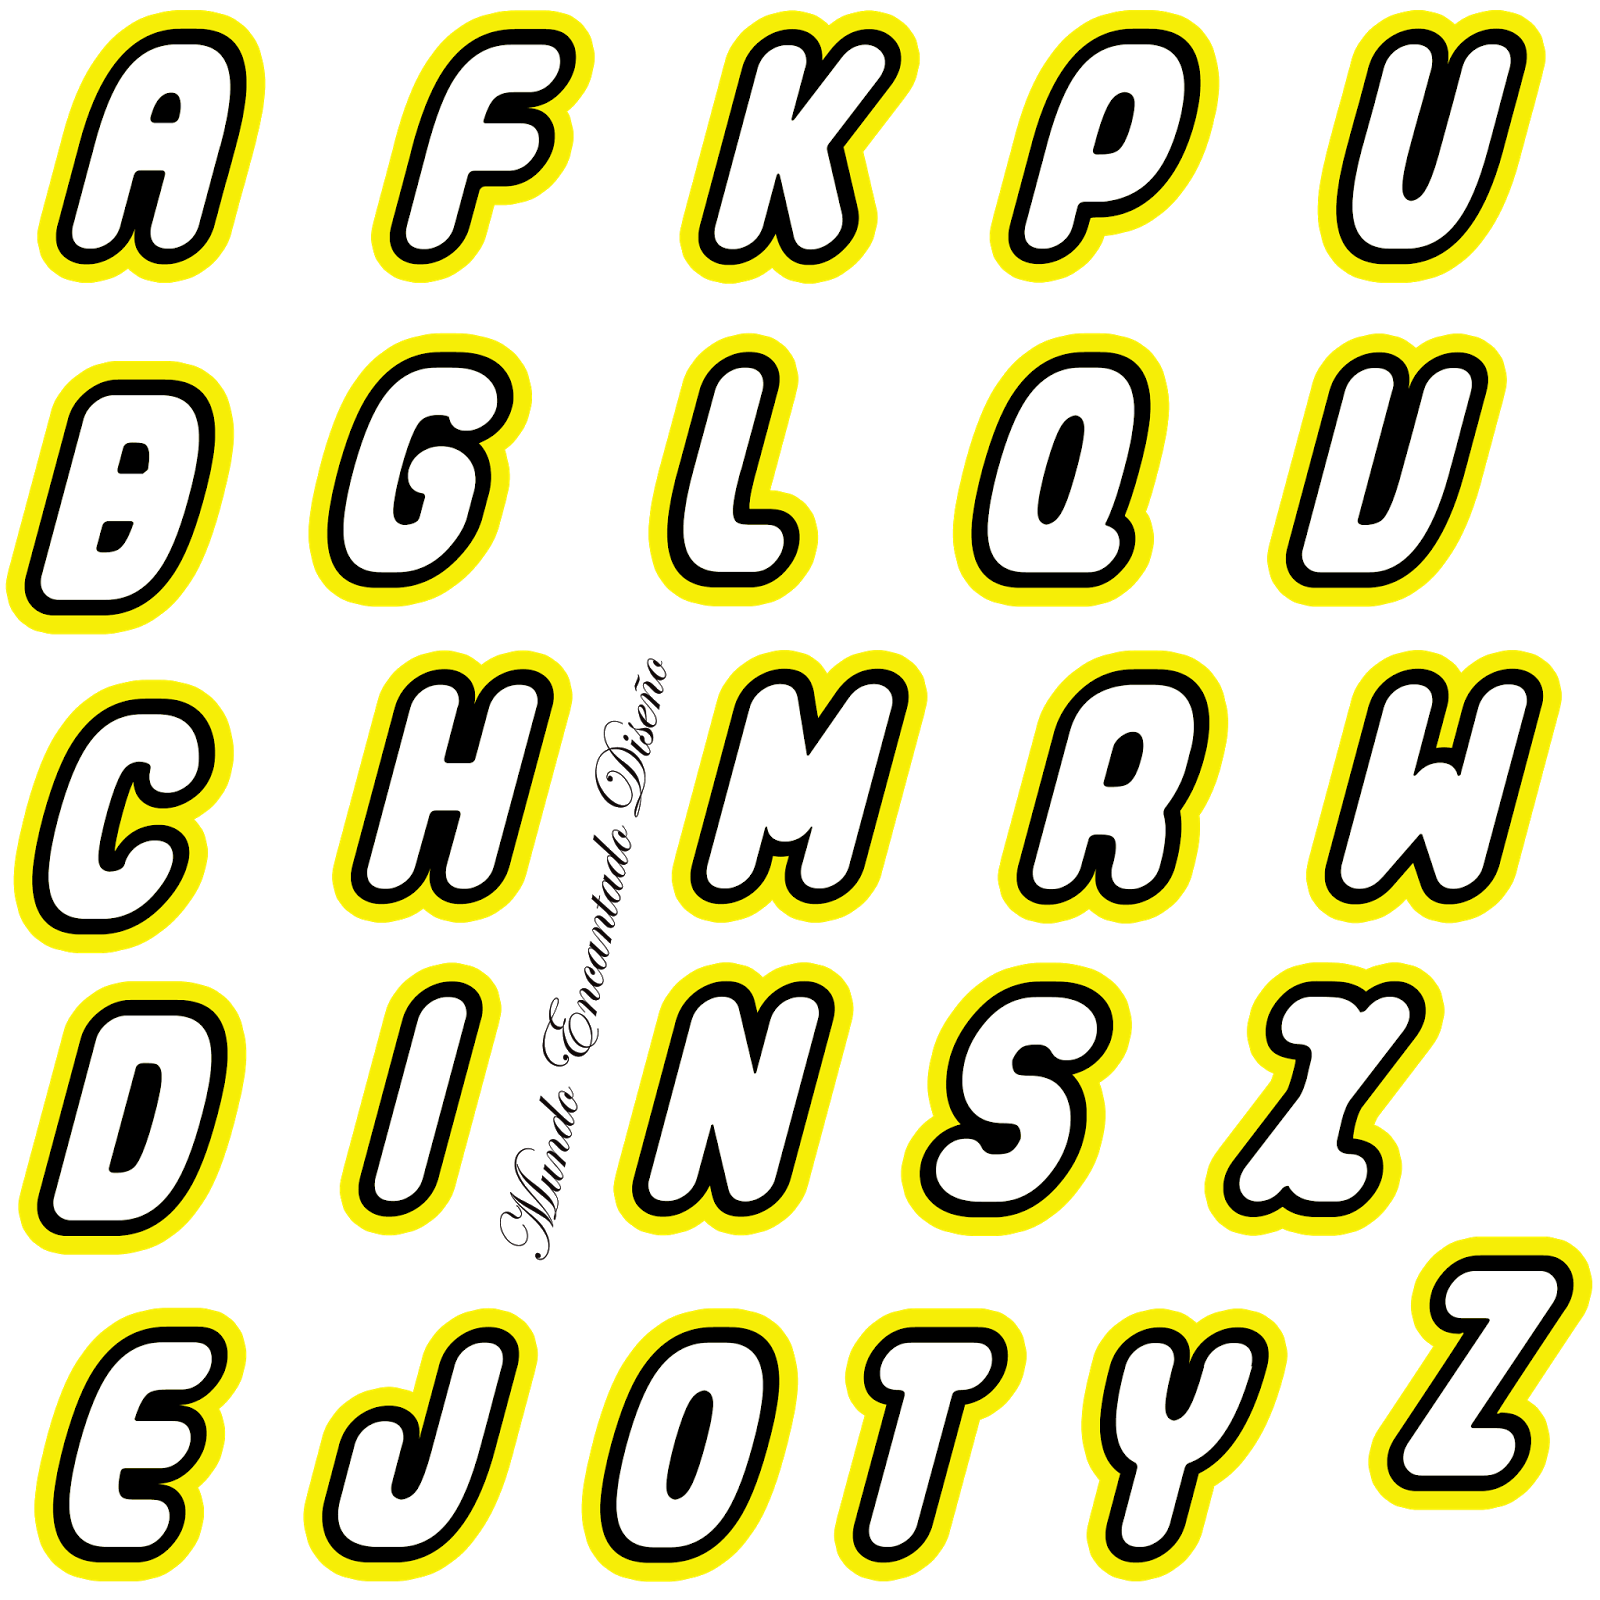 Lego alphabet png. Party letter toy fonts